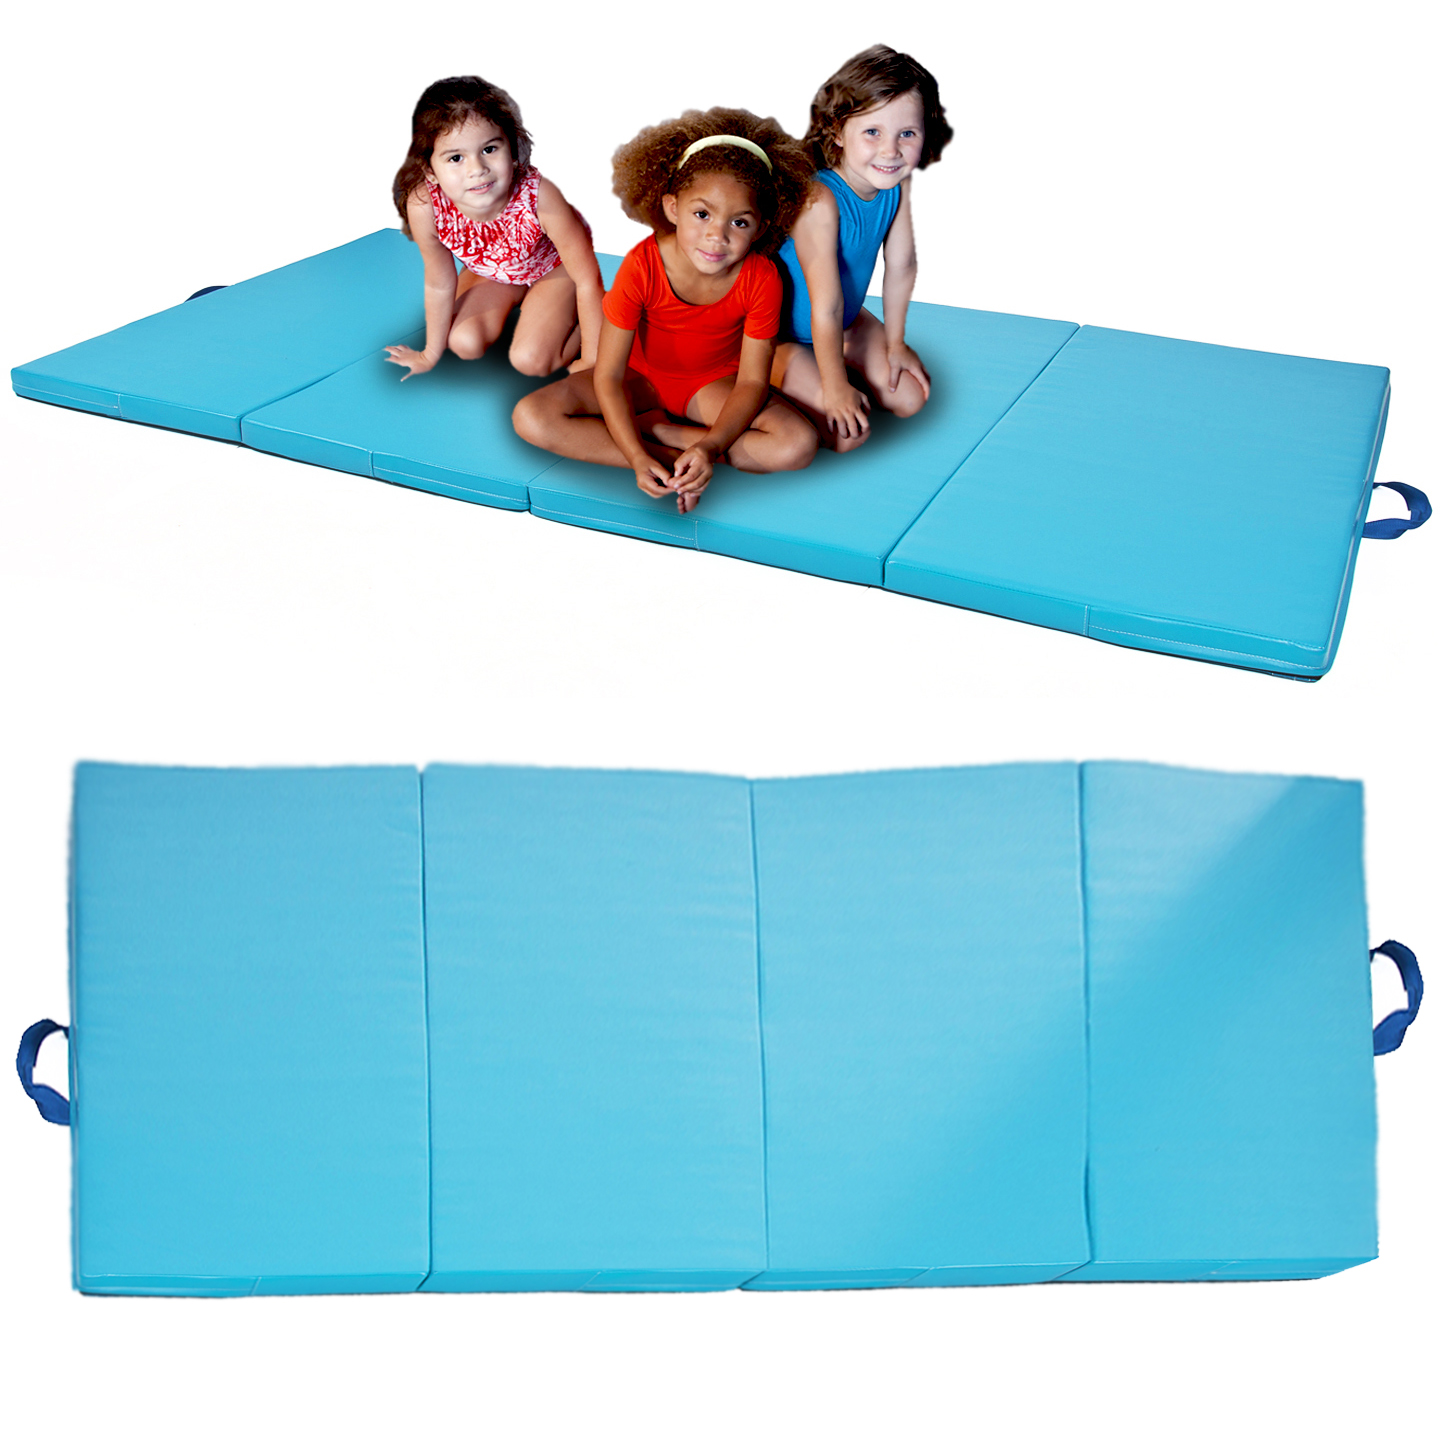 Blue-4x8x2-Gymnastics-Gym-Folding-Exercise-Aerobics